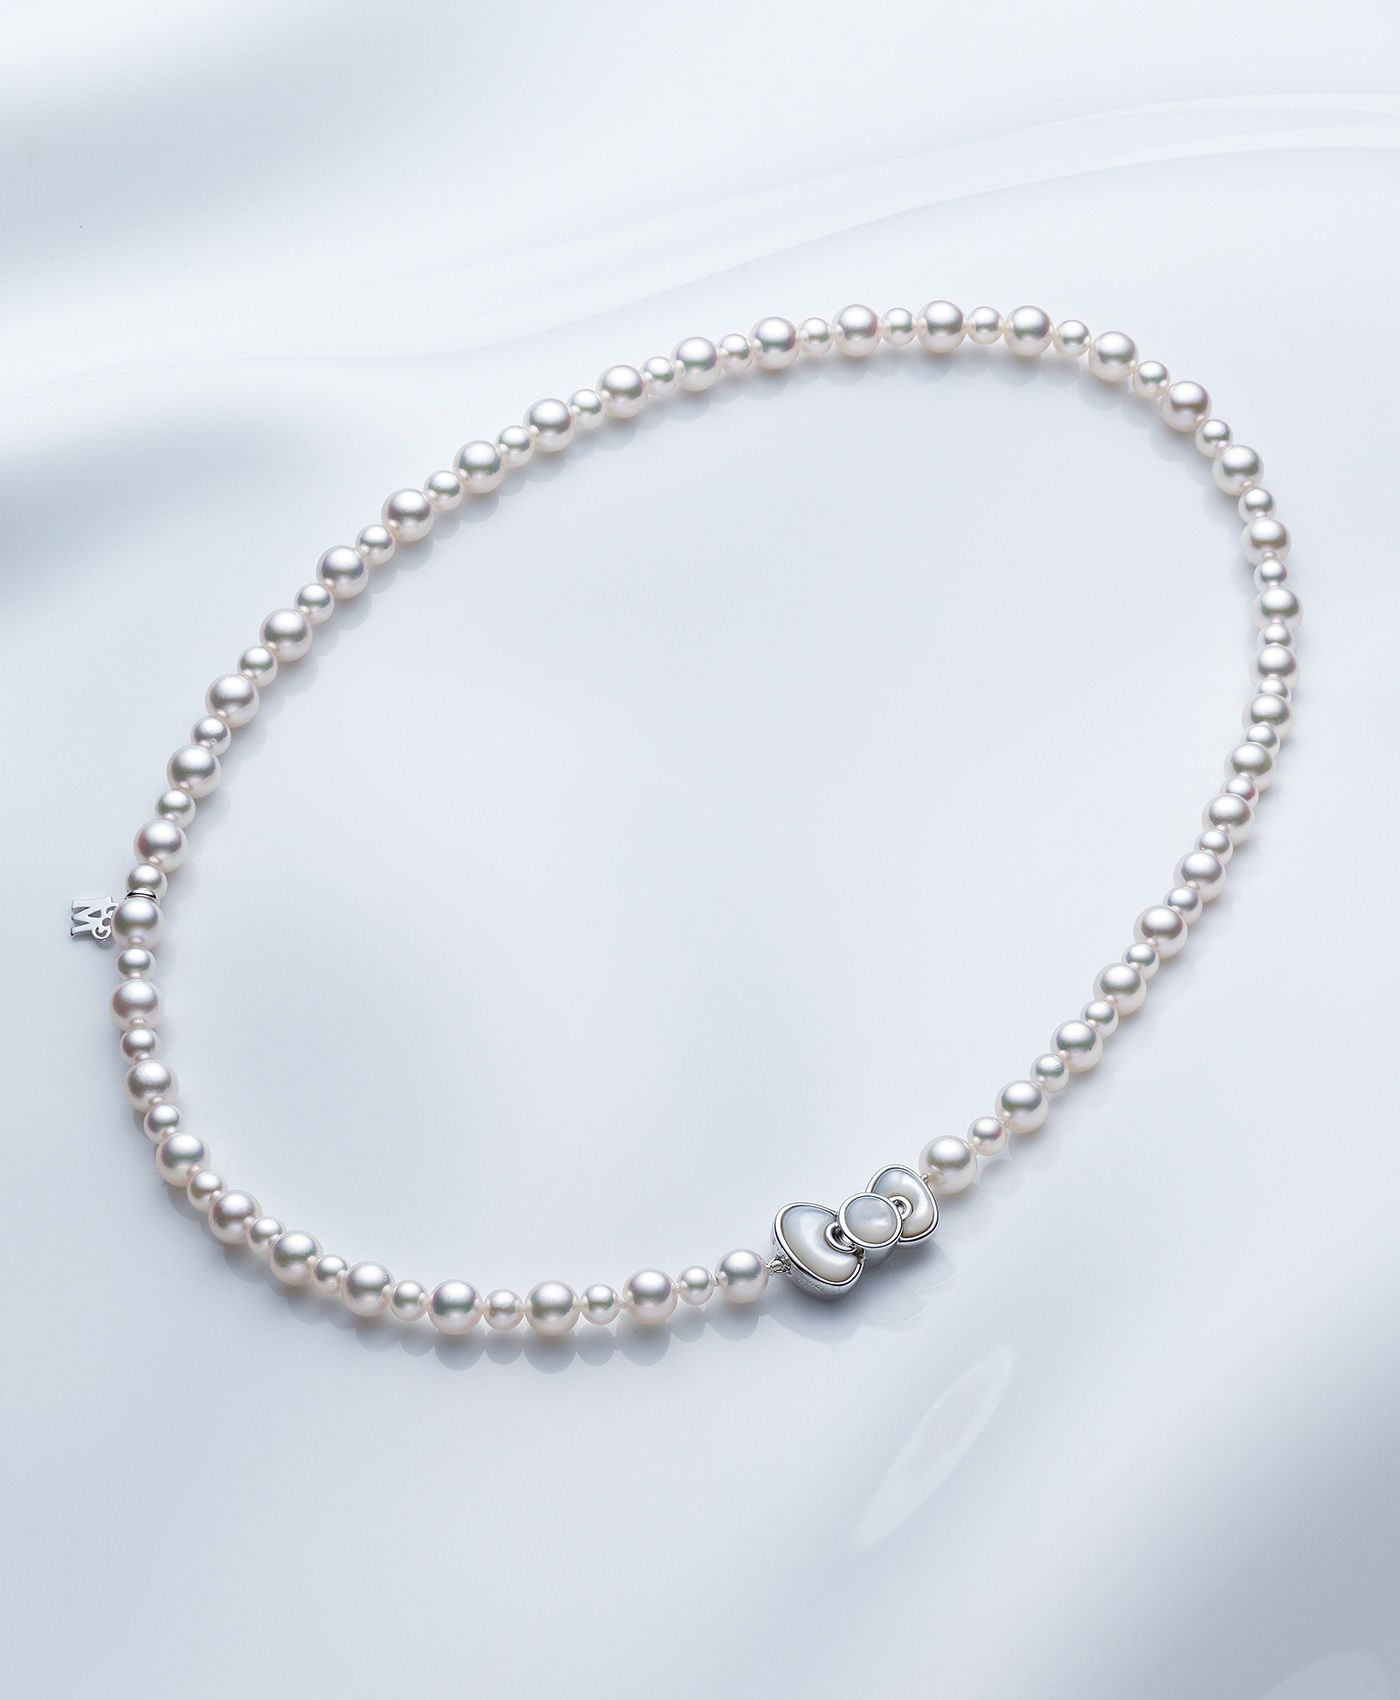 428a47cfb The Akoya pearls full of grace have been chosen rhythmically. Clasp, the  motif of the Hello Kitty ribbon with a white butterfly shell shiny.